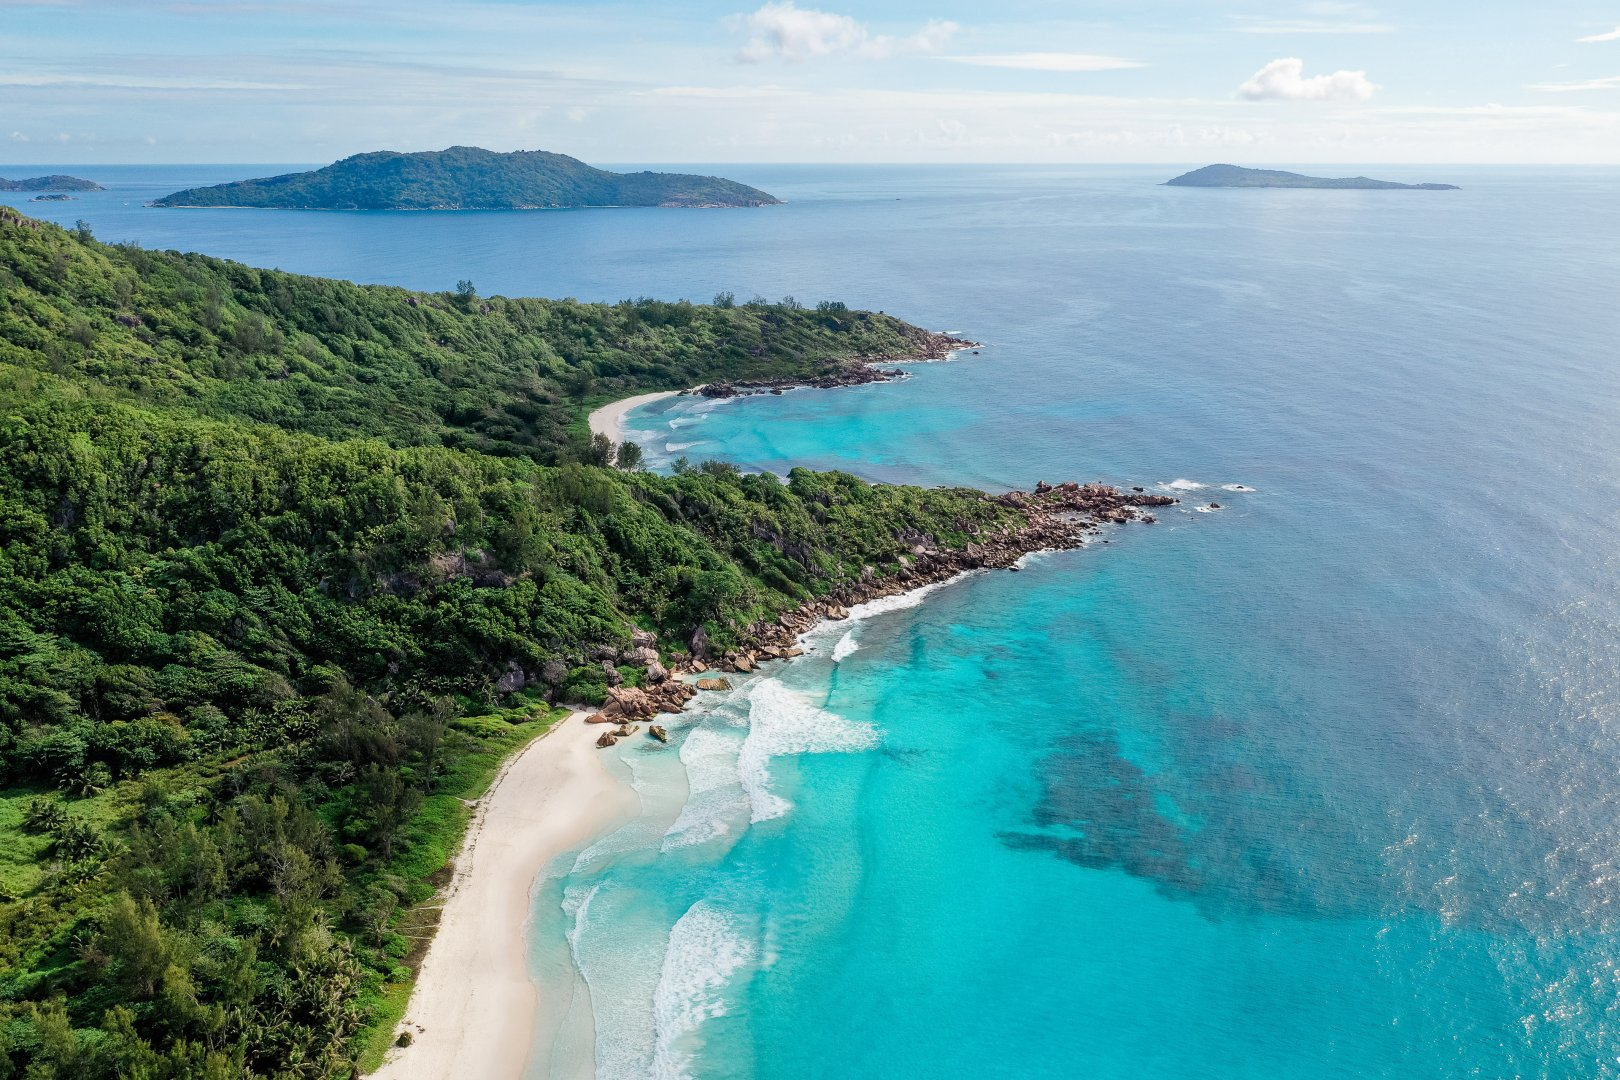 Body of water Coast Natural landscape Coastal and oceanic landforms Water resources Promontory Sea Headland Bight Inlet Bay Water Tropics Peninsula Cape Ocean Cove Lagoon Shore Archipelago Island Islet Caribbean Aerial photography Sound Tourism Vacation Cay Landscape Tourist attraction